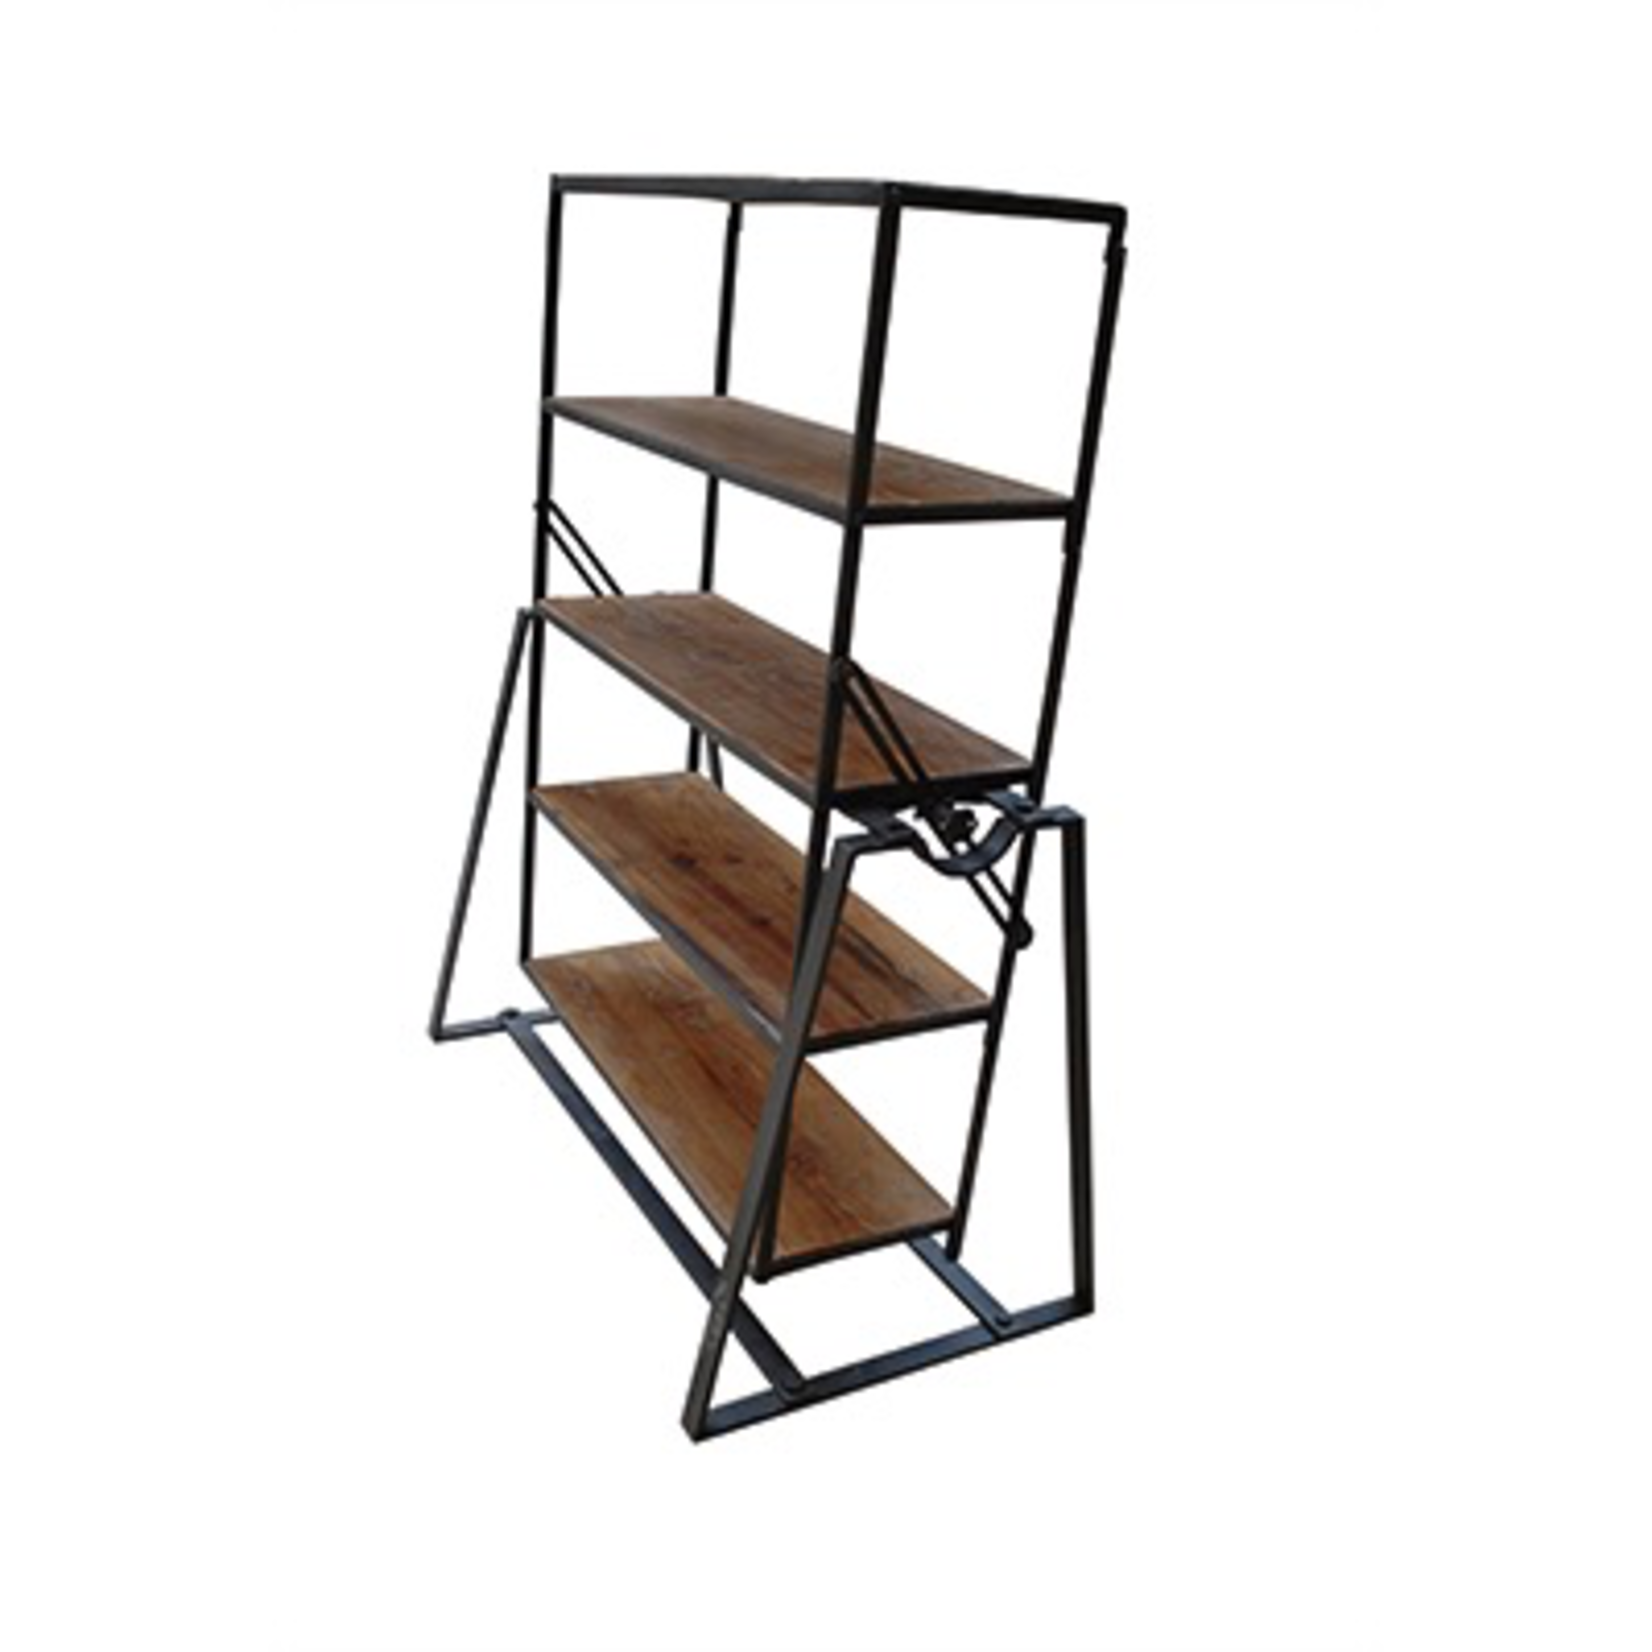 """CHEHOMA IRON & WOODEN SHELF WITH 5 LEVELS """"STANTON"""" TABLE"""